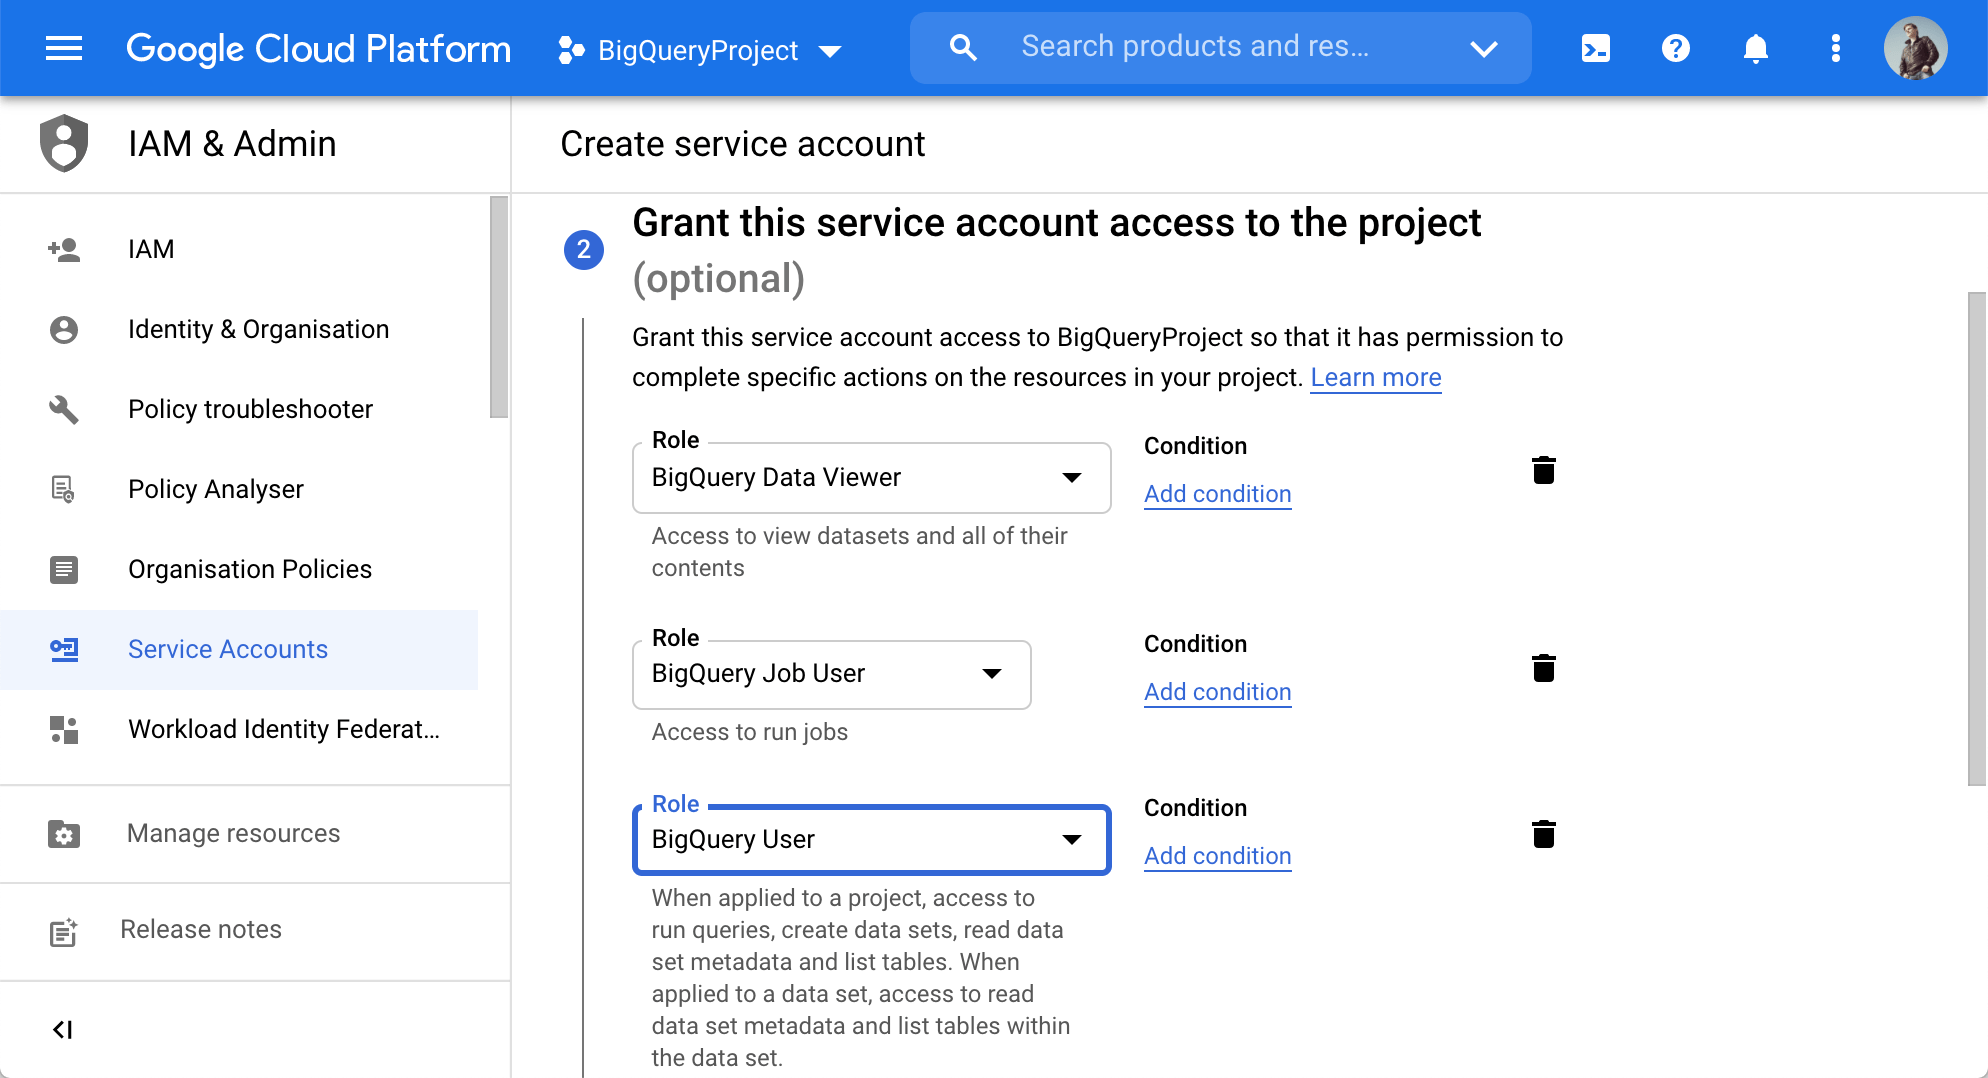 Grant this service account access to the project